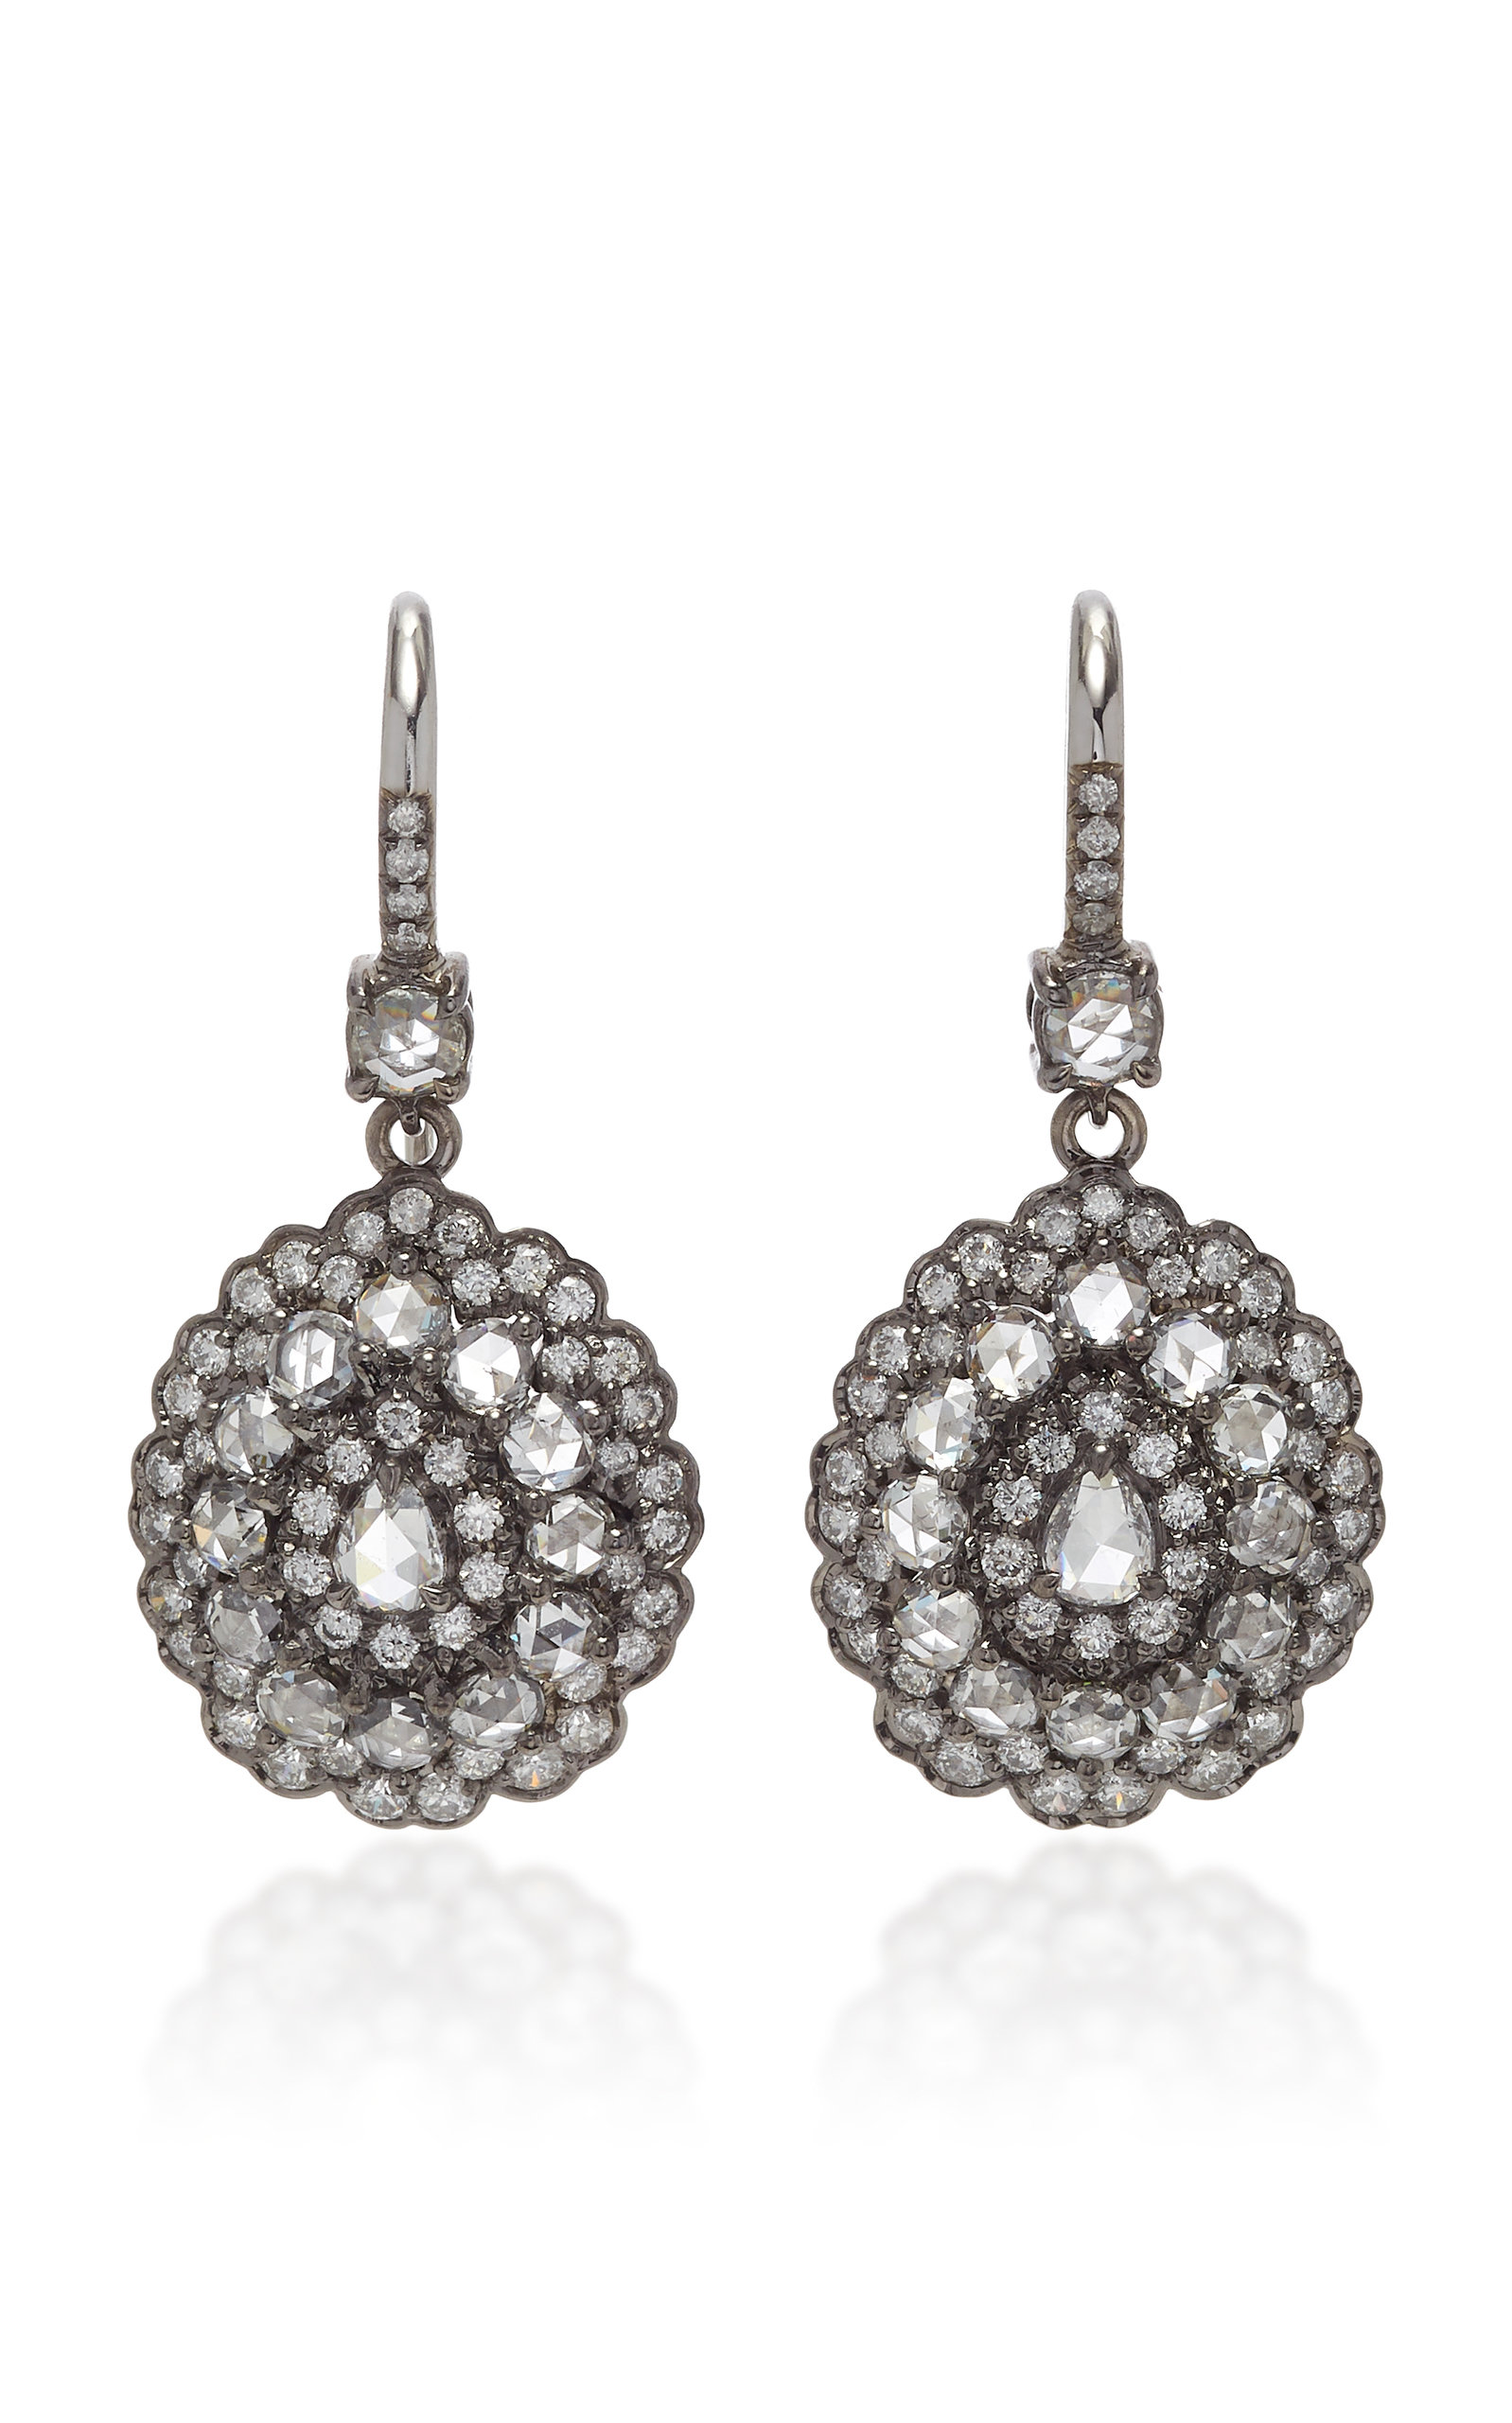 NAM CHO 18K Gold Diamond Earrings in White